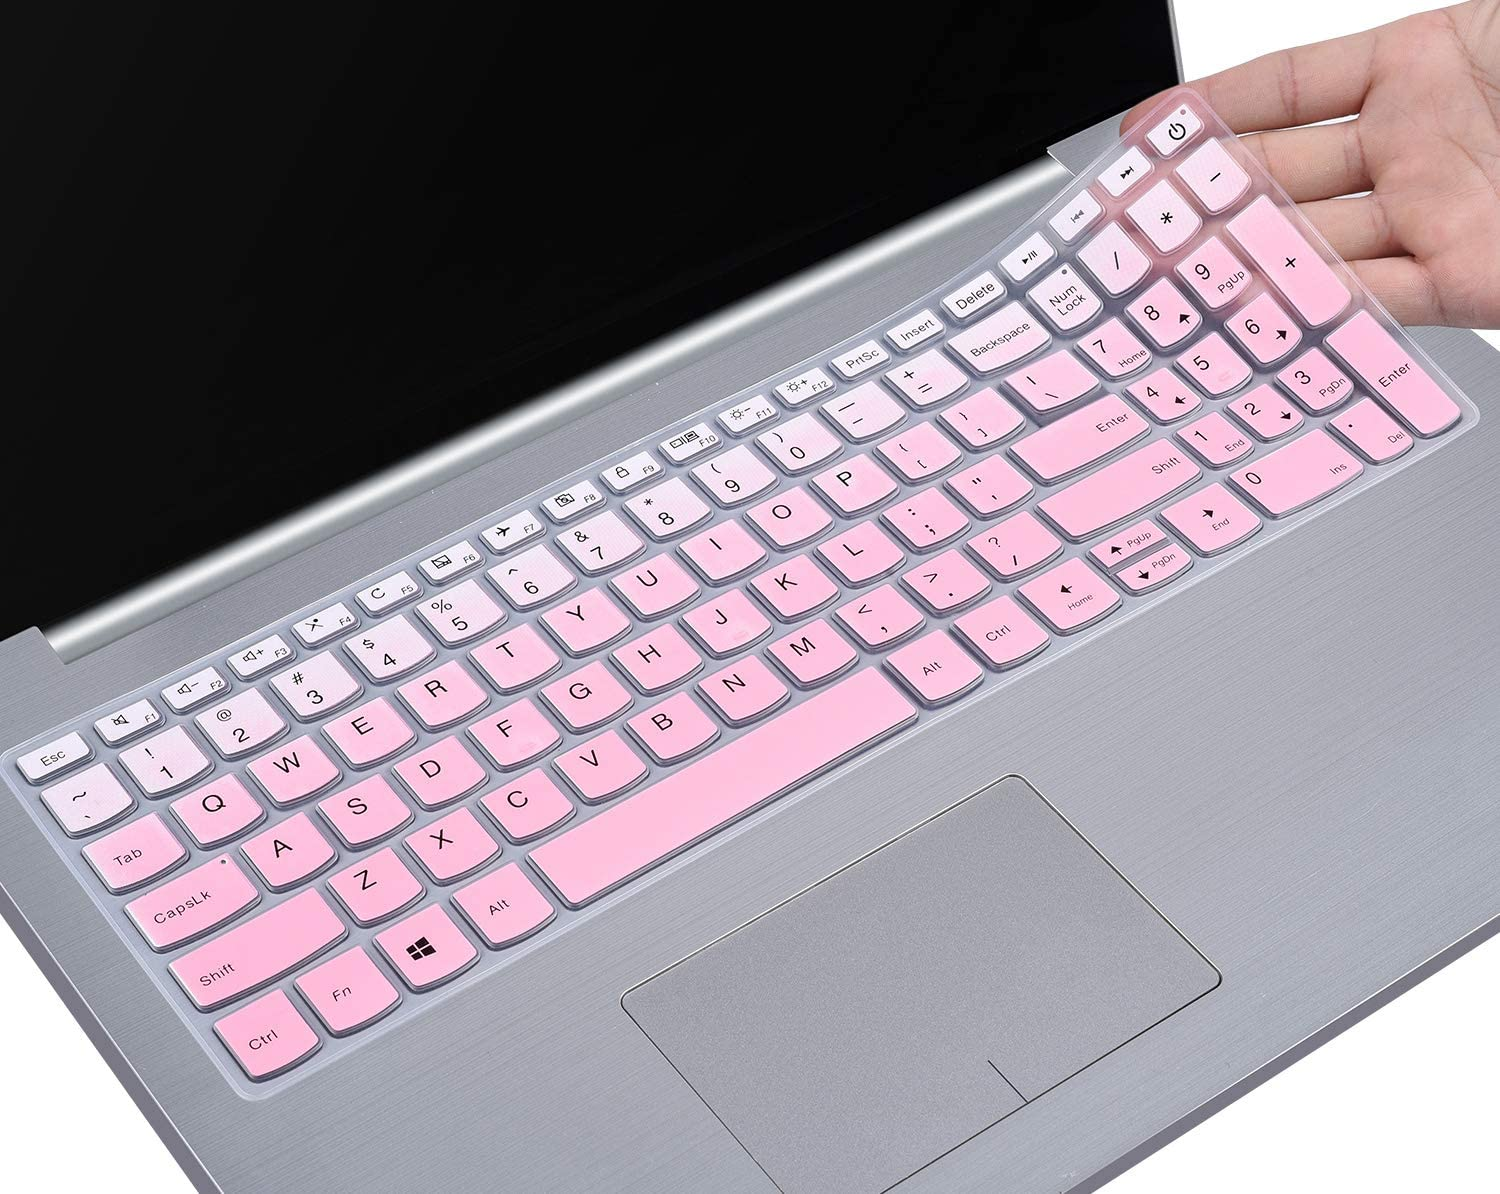 Keyboard Cover Compatible Lenovo IdeaPad 320 330 330s 340s 520 720s 130 S145 L340 S340 15.6 inch / 2019 2018 New Lenovo IdeaPad 15.6 / Lenovo IdeaPad 320 330 17.3 inch Laptop Skin, Gradual Pink